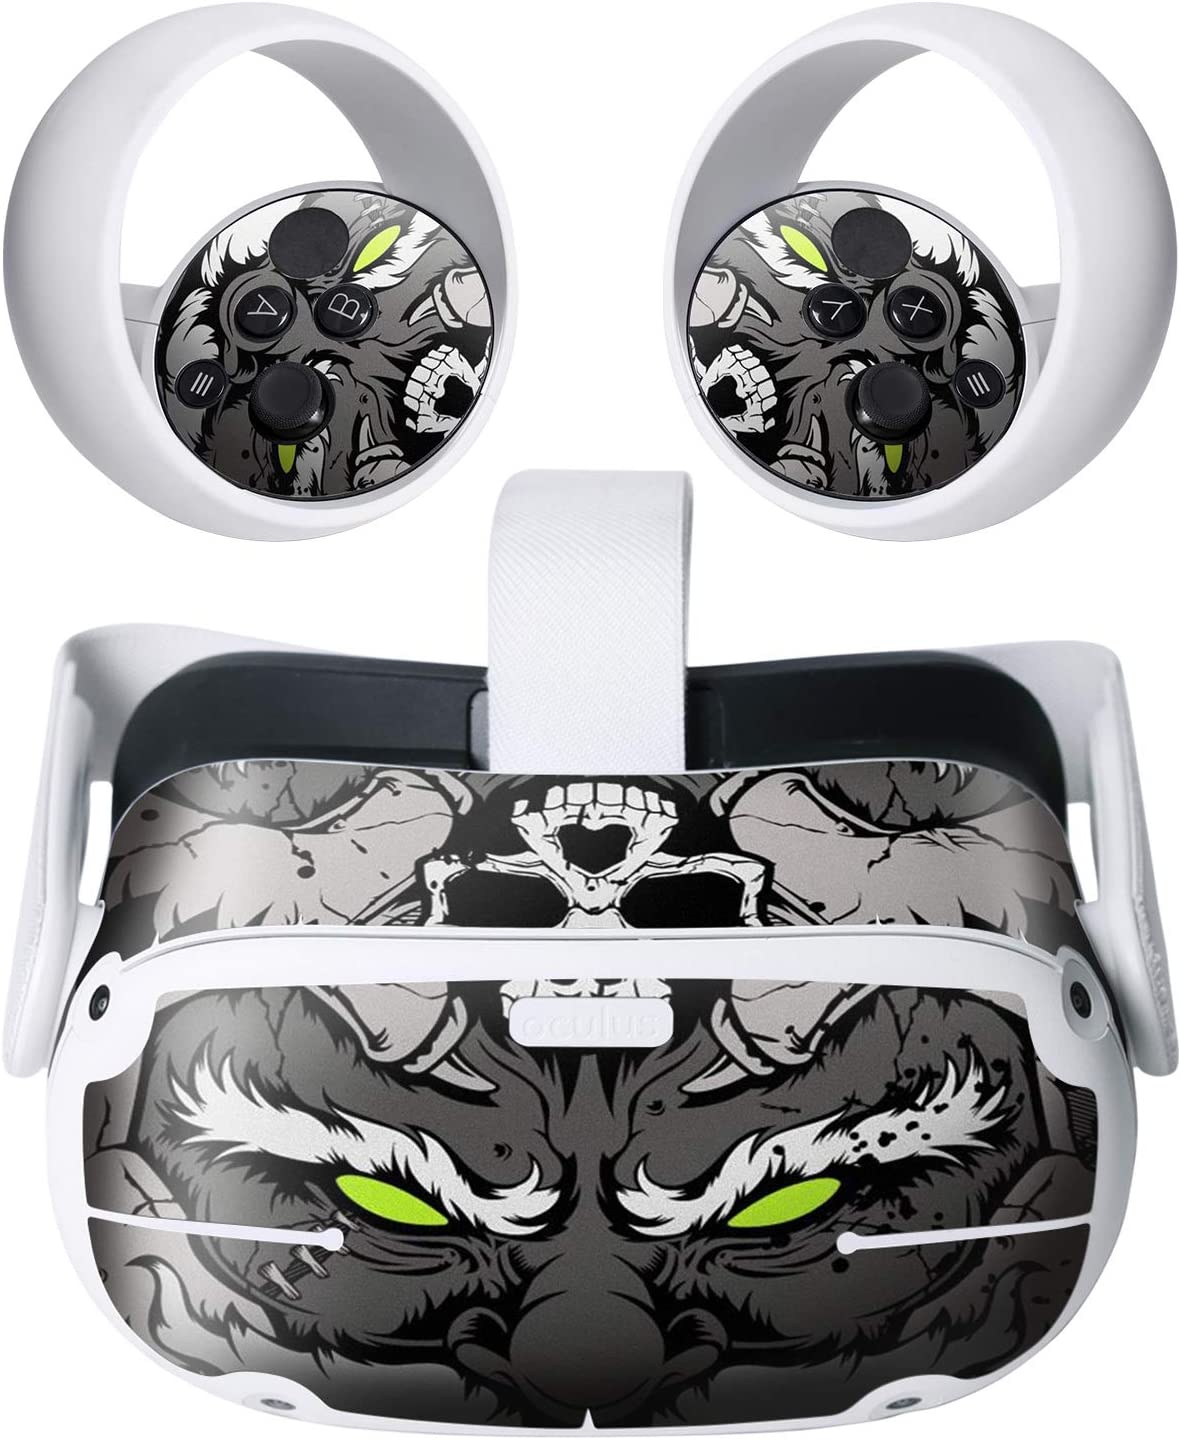 Hifylux Stickers for Oculus Quest 2 VR Headset and Controller Virtual Reality PVC Decal Skin Protective Accessories Black Skull